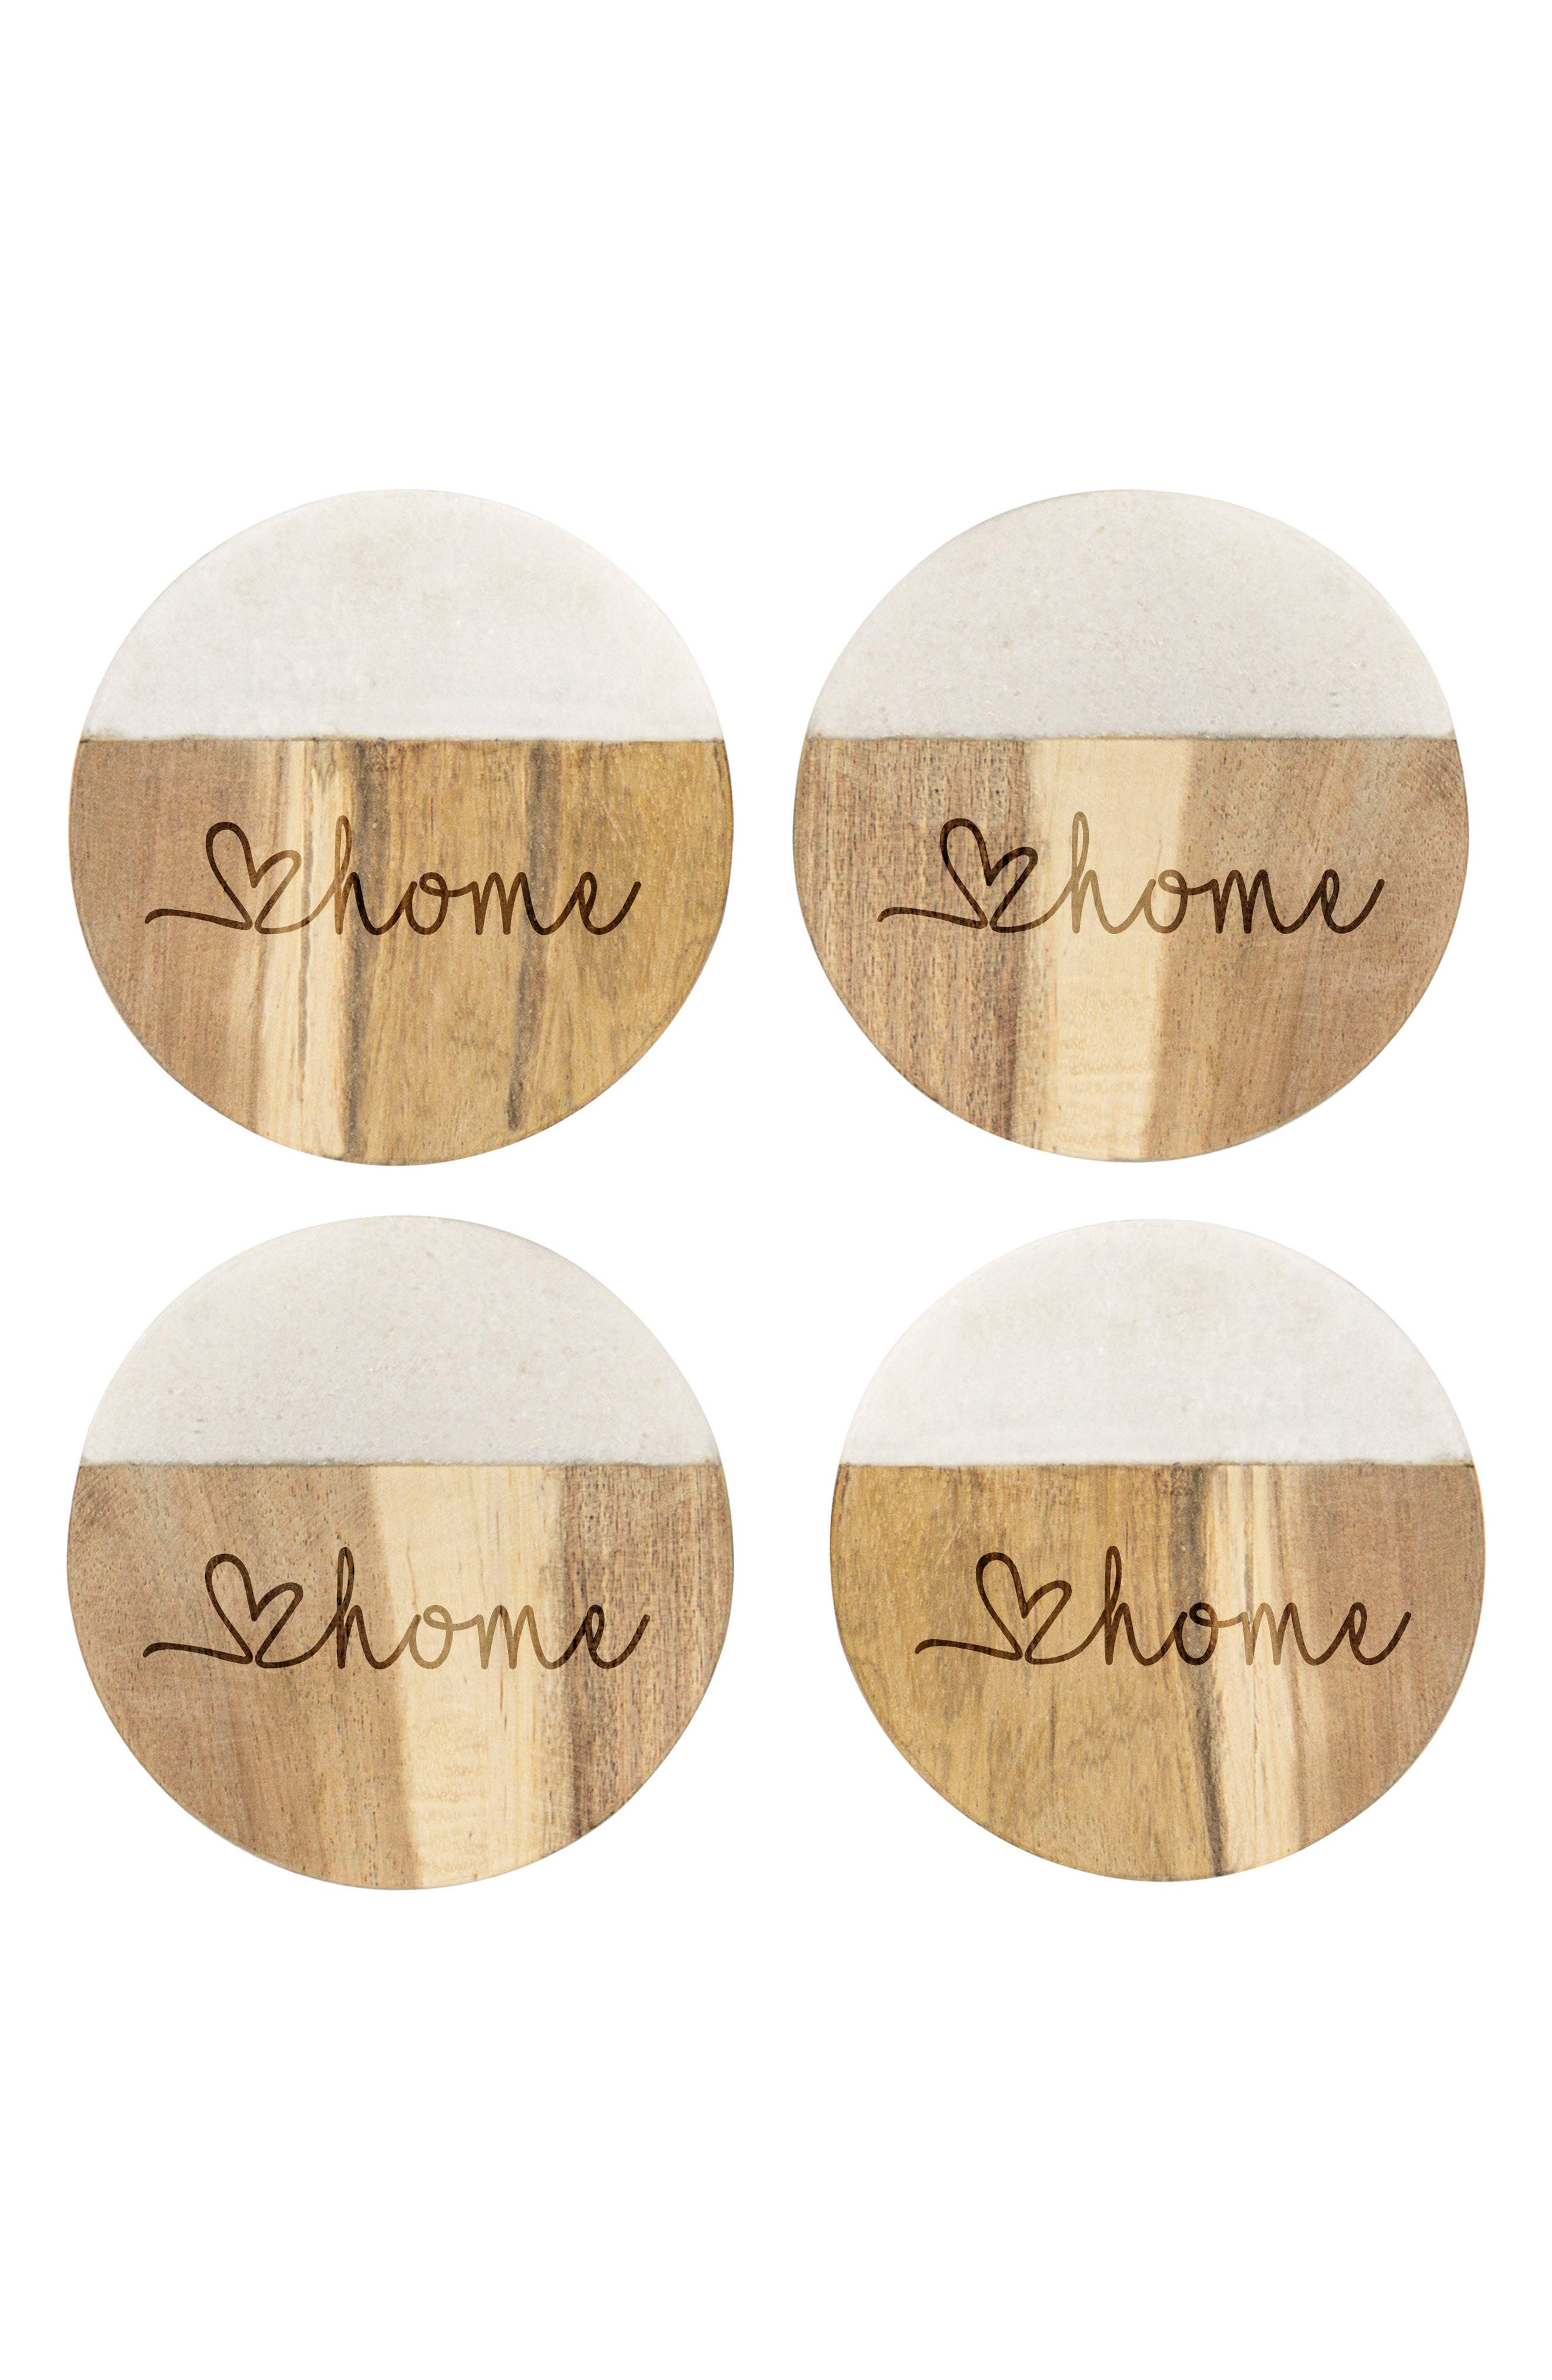 Cathy's Concepts Love Home Set of 4 Marble & Acacia Wood Coasters